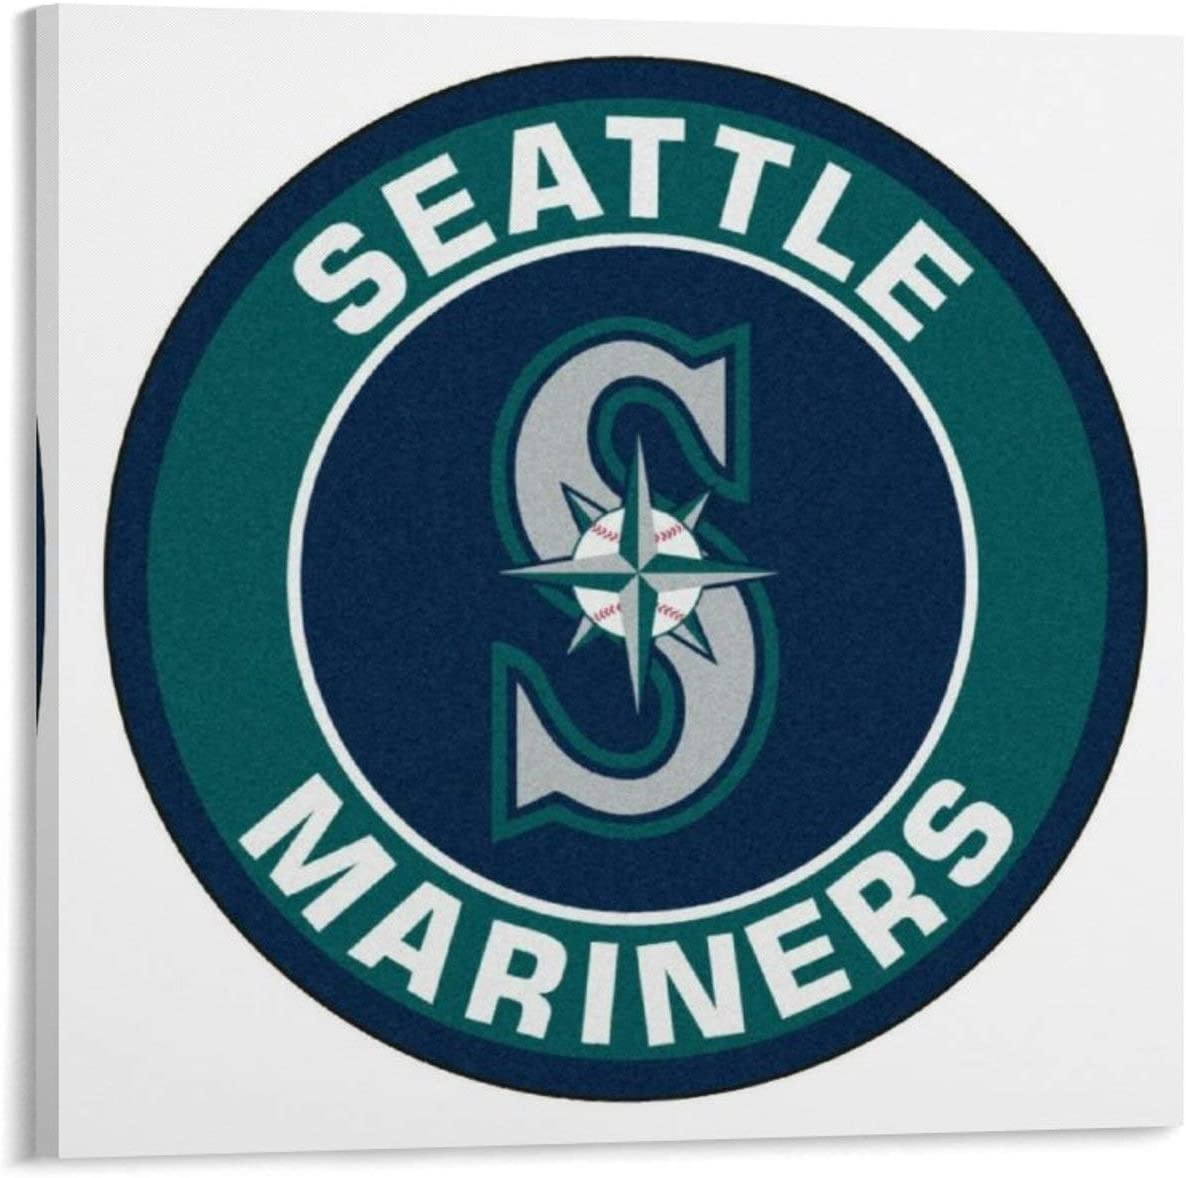 YOSON Seattles-Mariners Wall FINDEMO Art Decor Canvas Painting Poster Print Canvas Art Pictures for Room Home Decor Frame-style112x12inch(30x30cm)